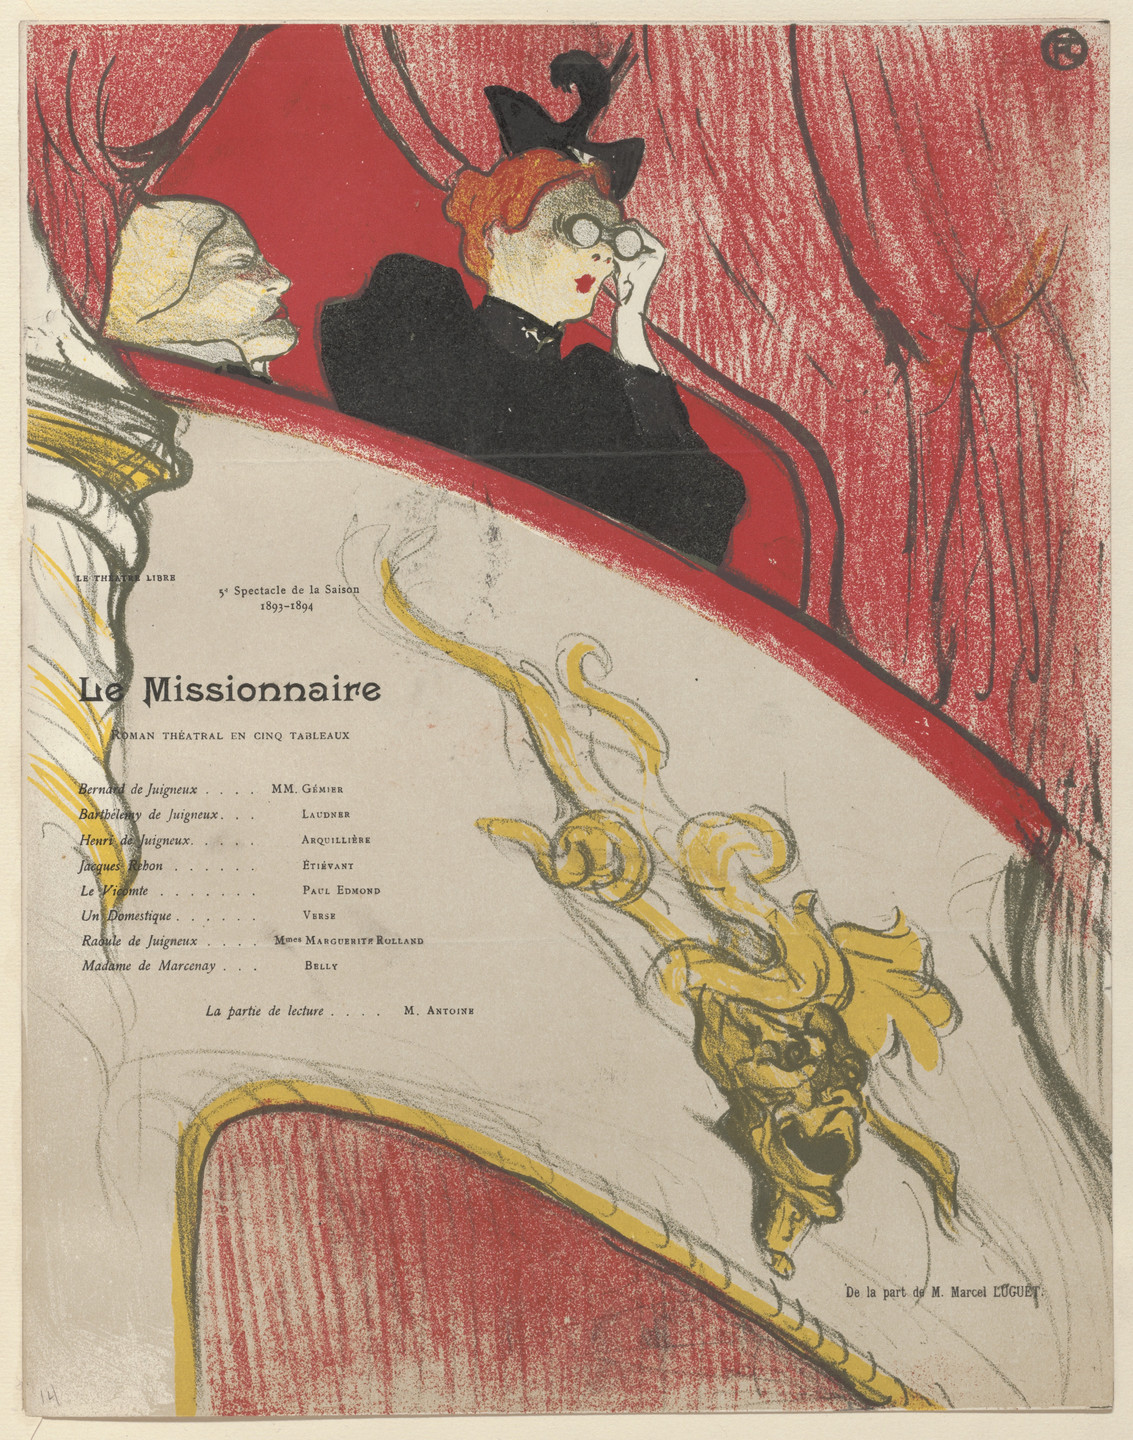 Henri de Toulouse-Lautrec. The Box with the Gilded Mask (La Loge au mascaron doré), program for The Missionary (Le Missionnaire) from The Beraldi Album of Theatre Programs. 1894